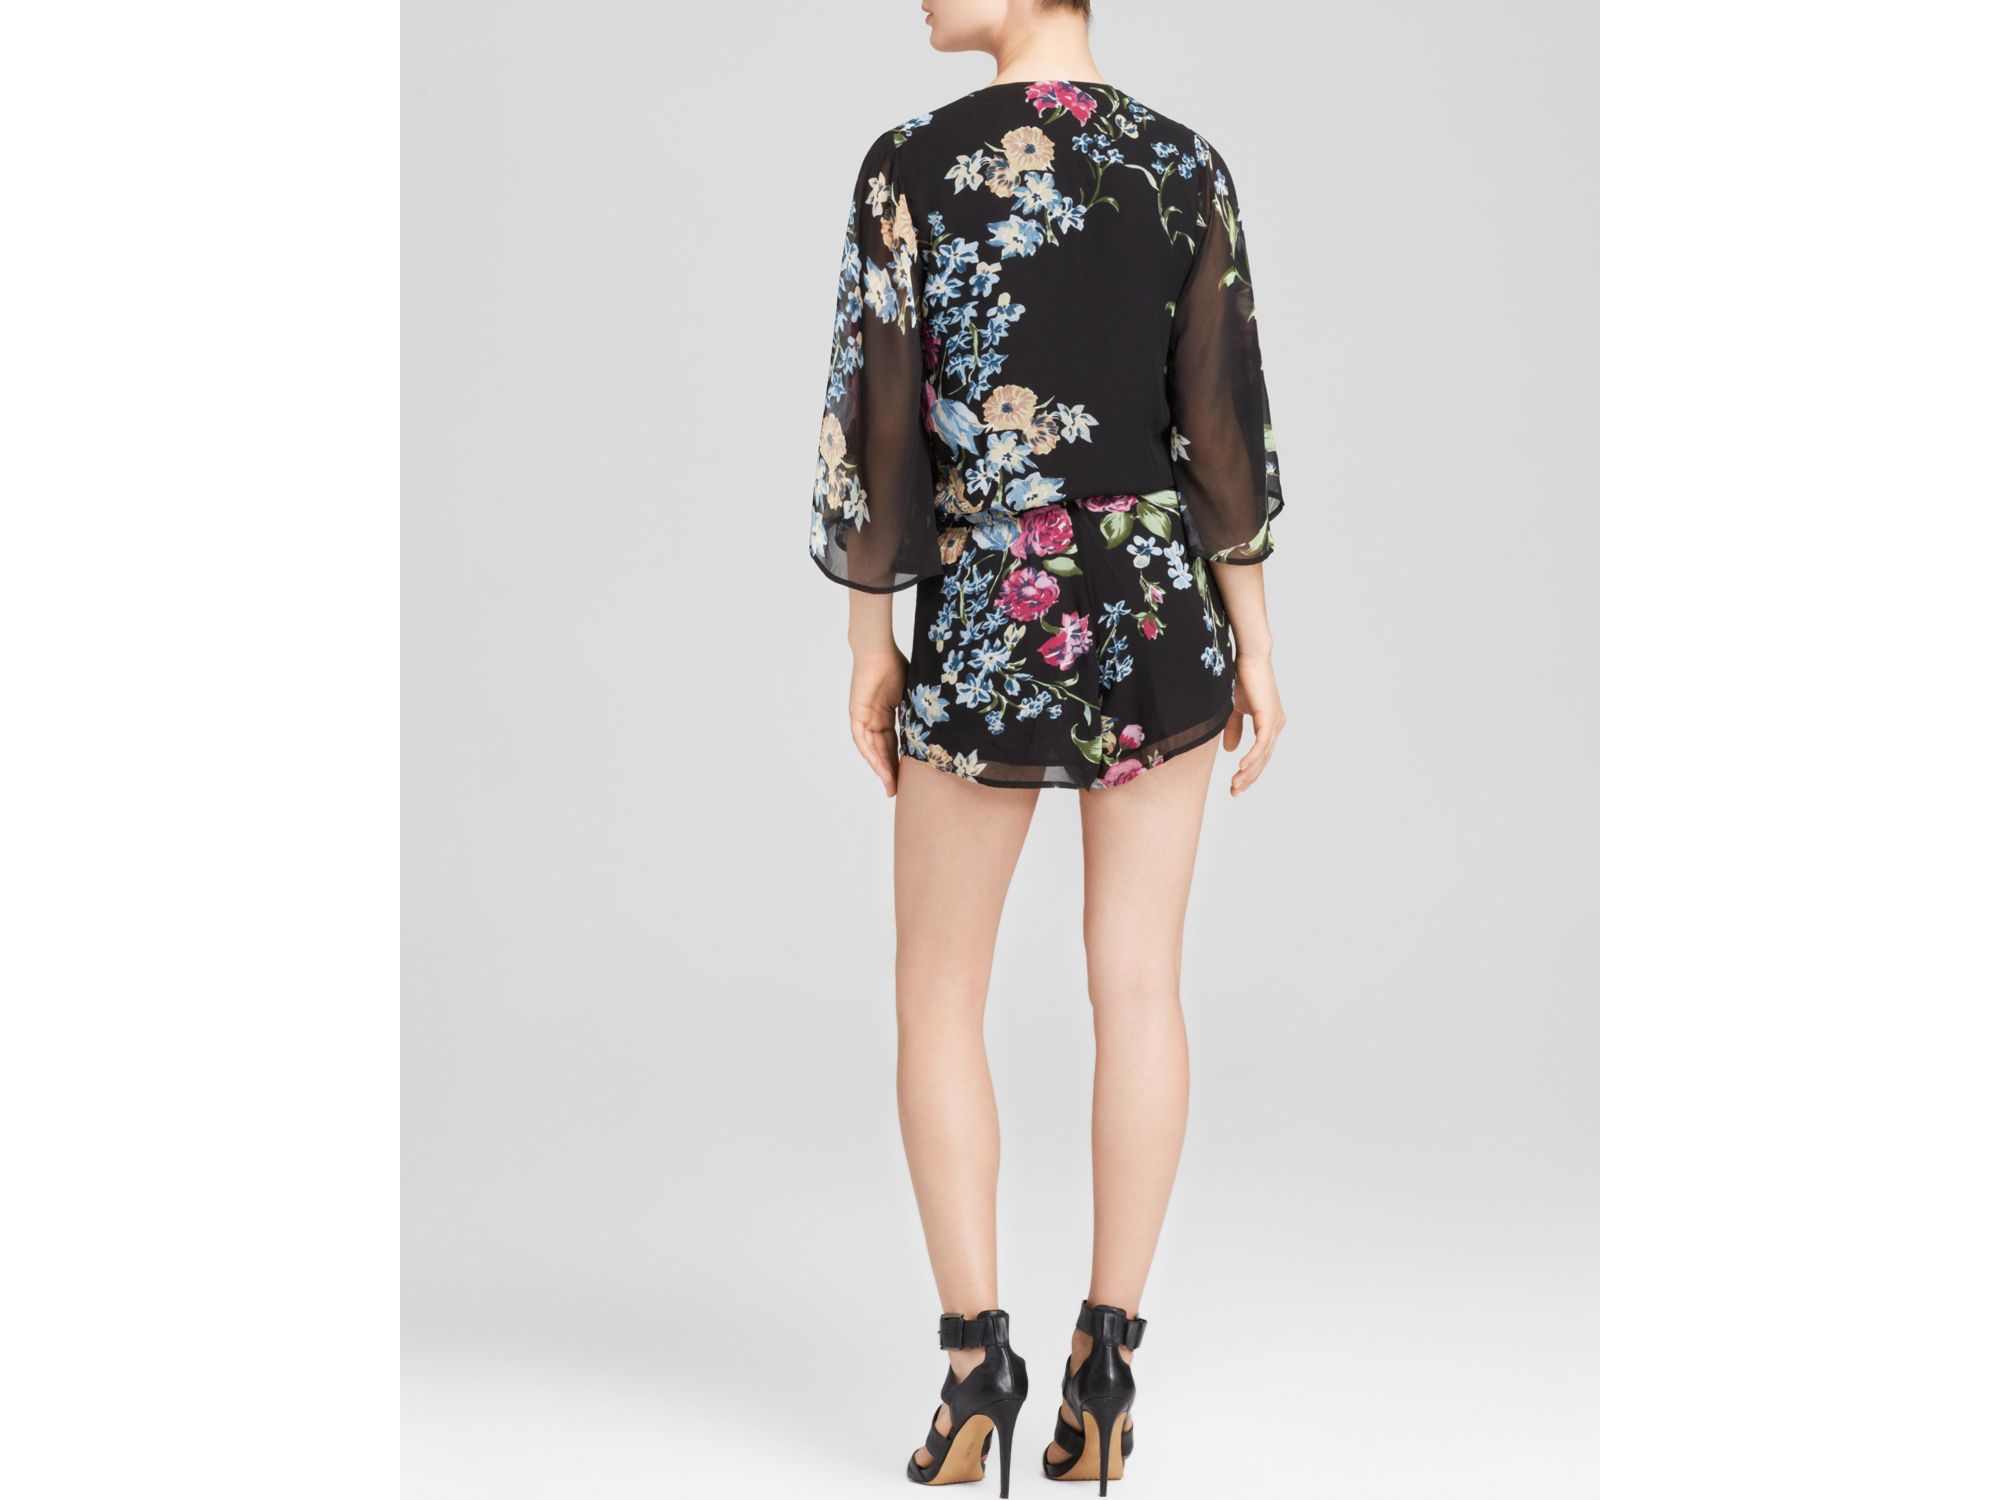 c8d0ab17c1c Lyst - Olivaceous Floral Printed Romper in Black